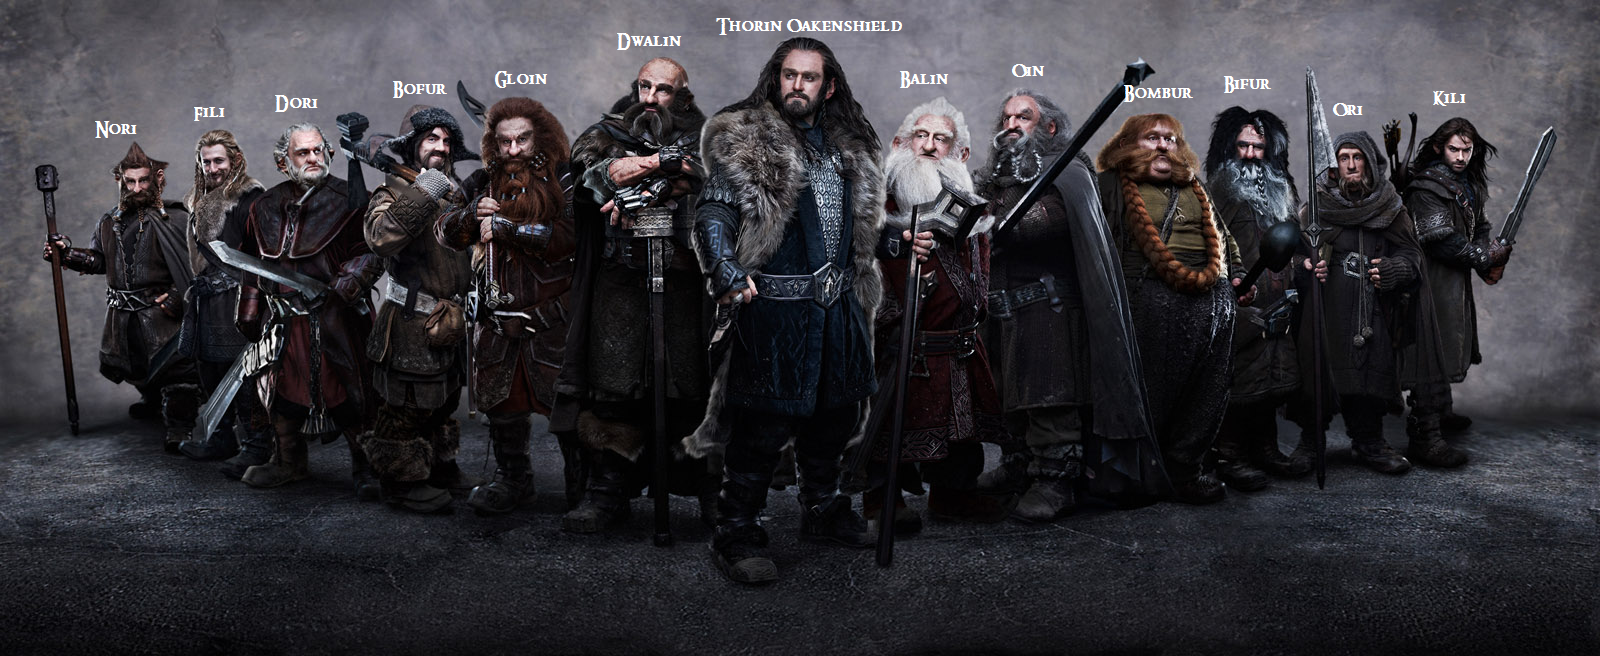 Thorin_and_Company.png